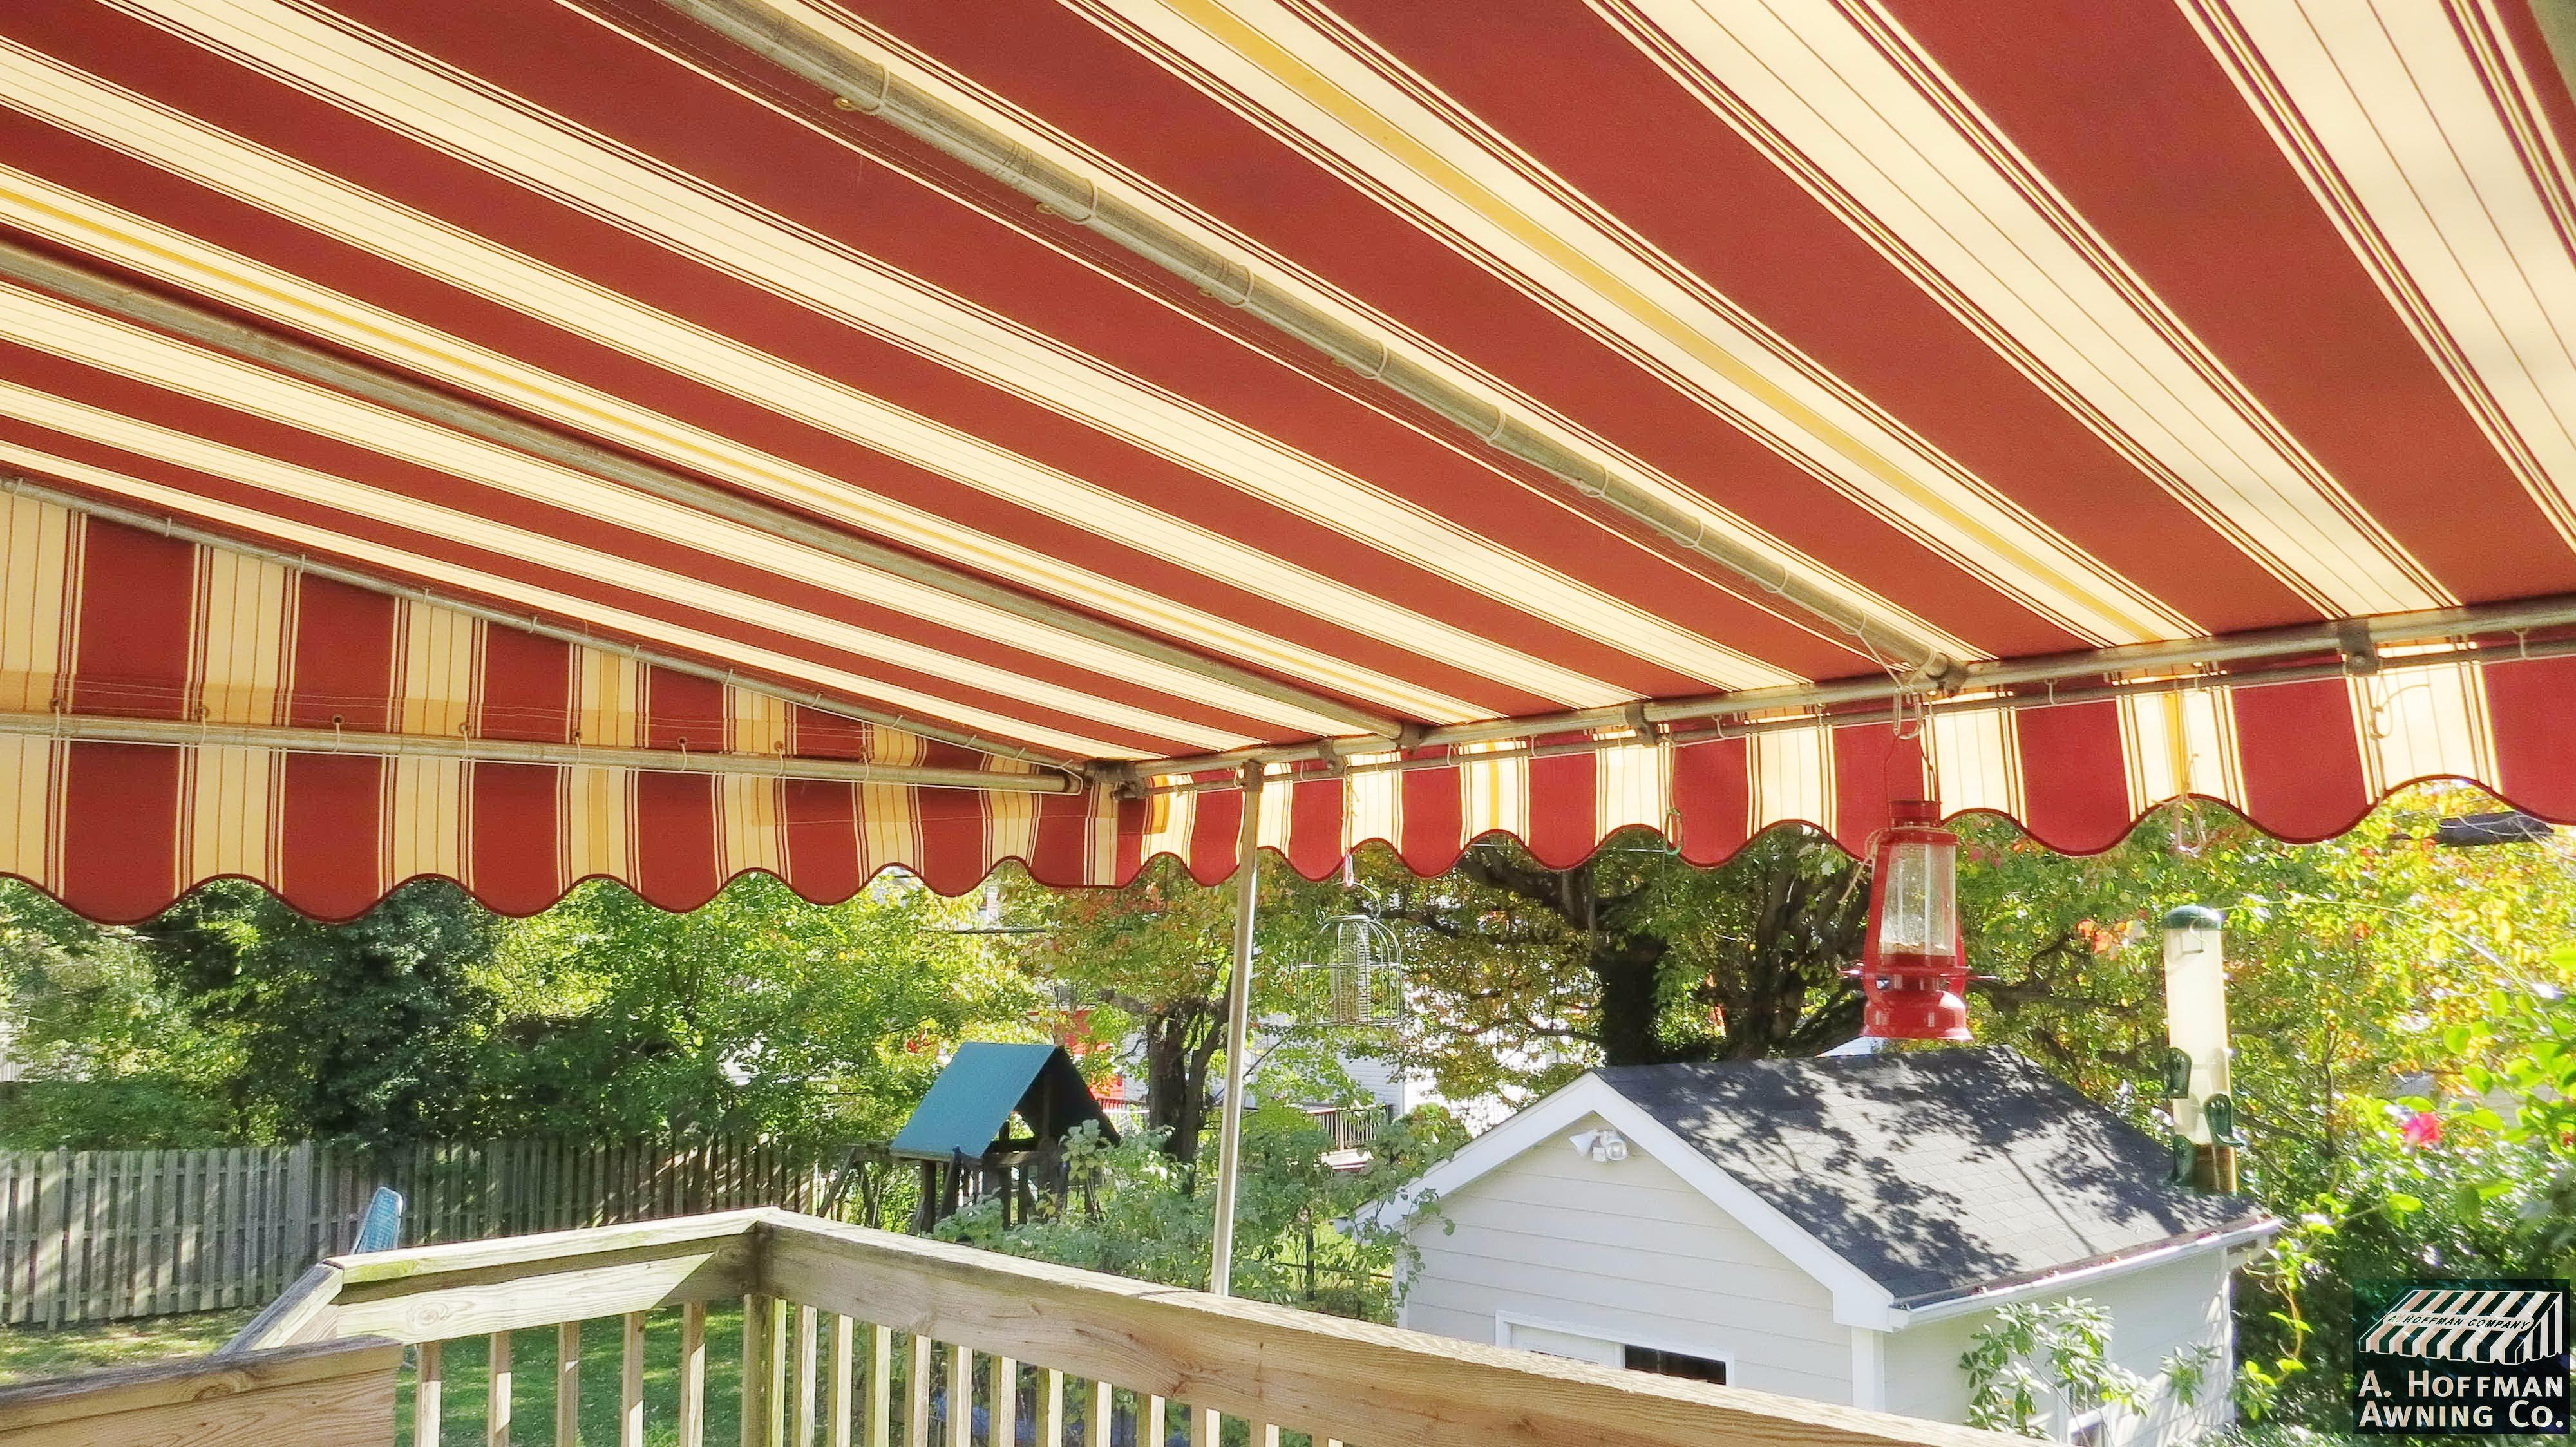 A Hoffman Awning Co Coupons Near Me In Baltimore